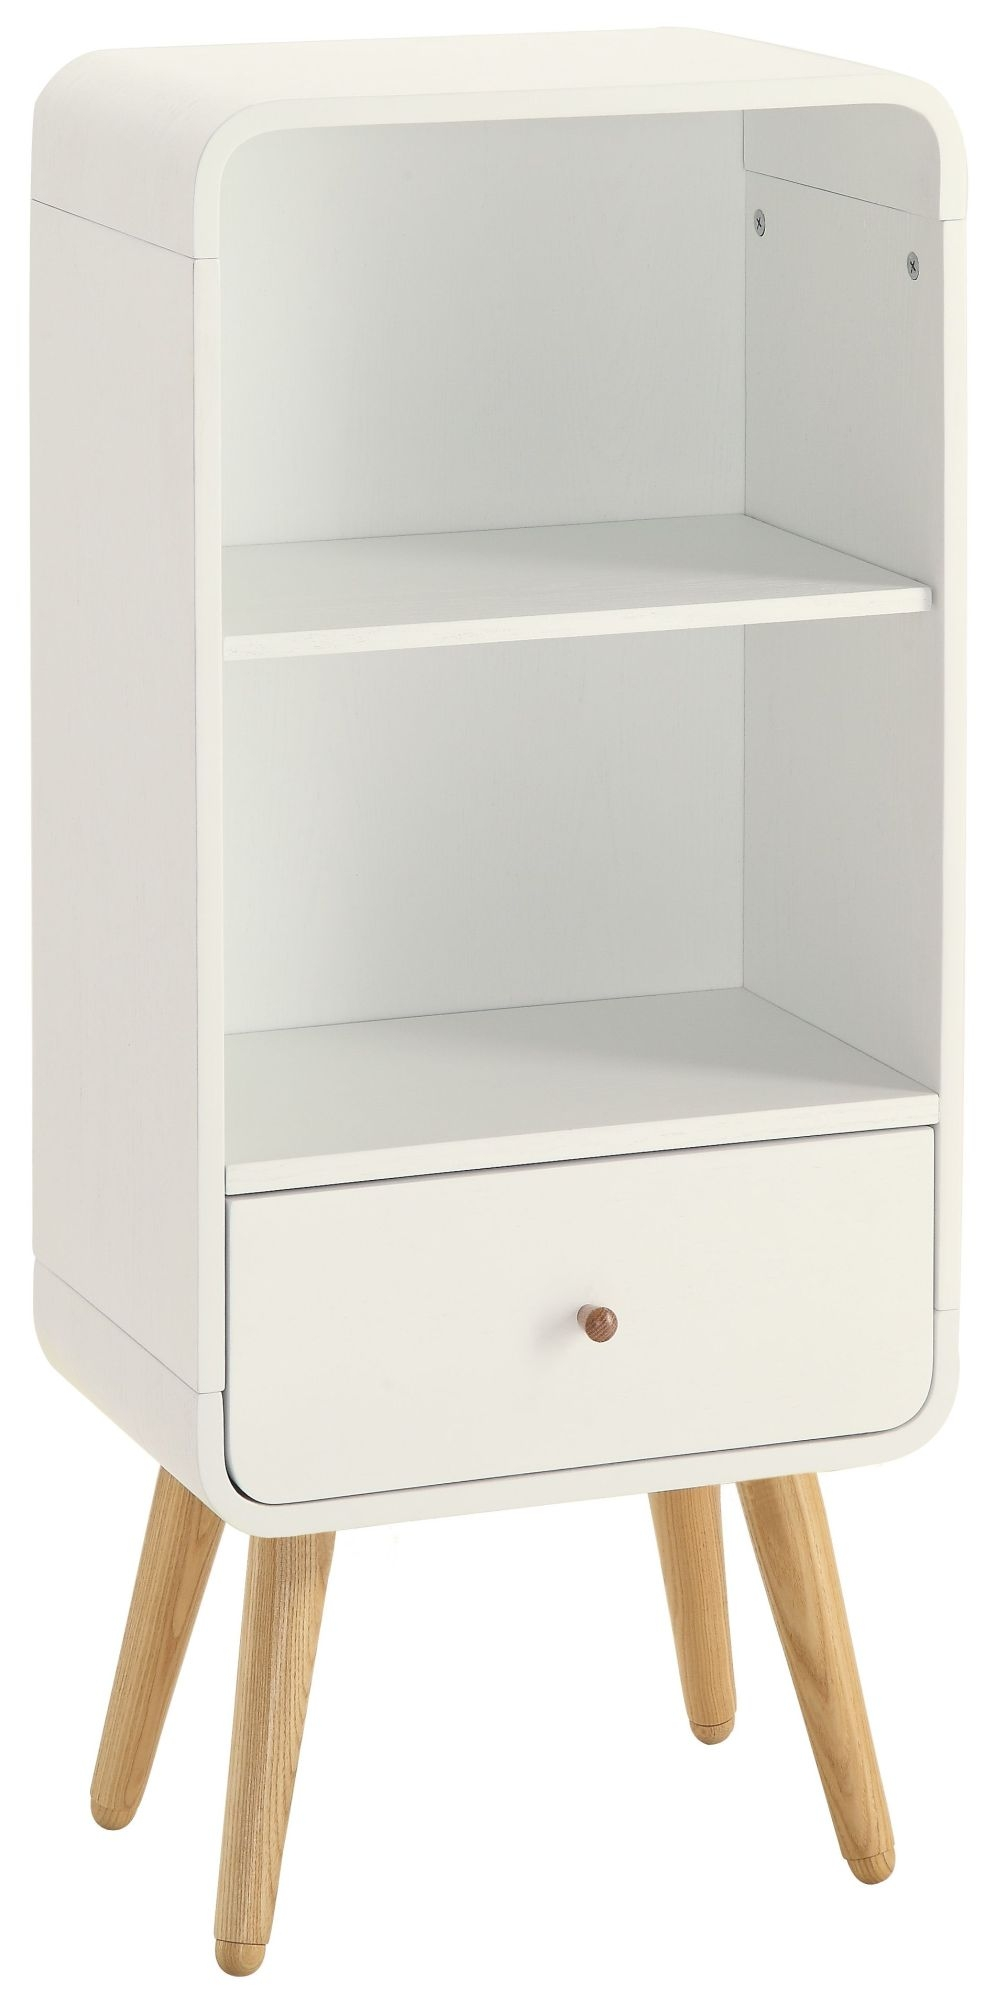 Jual White Bookcase - 1 Drawer 2 Shelves Short PC704